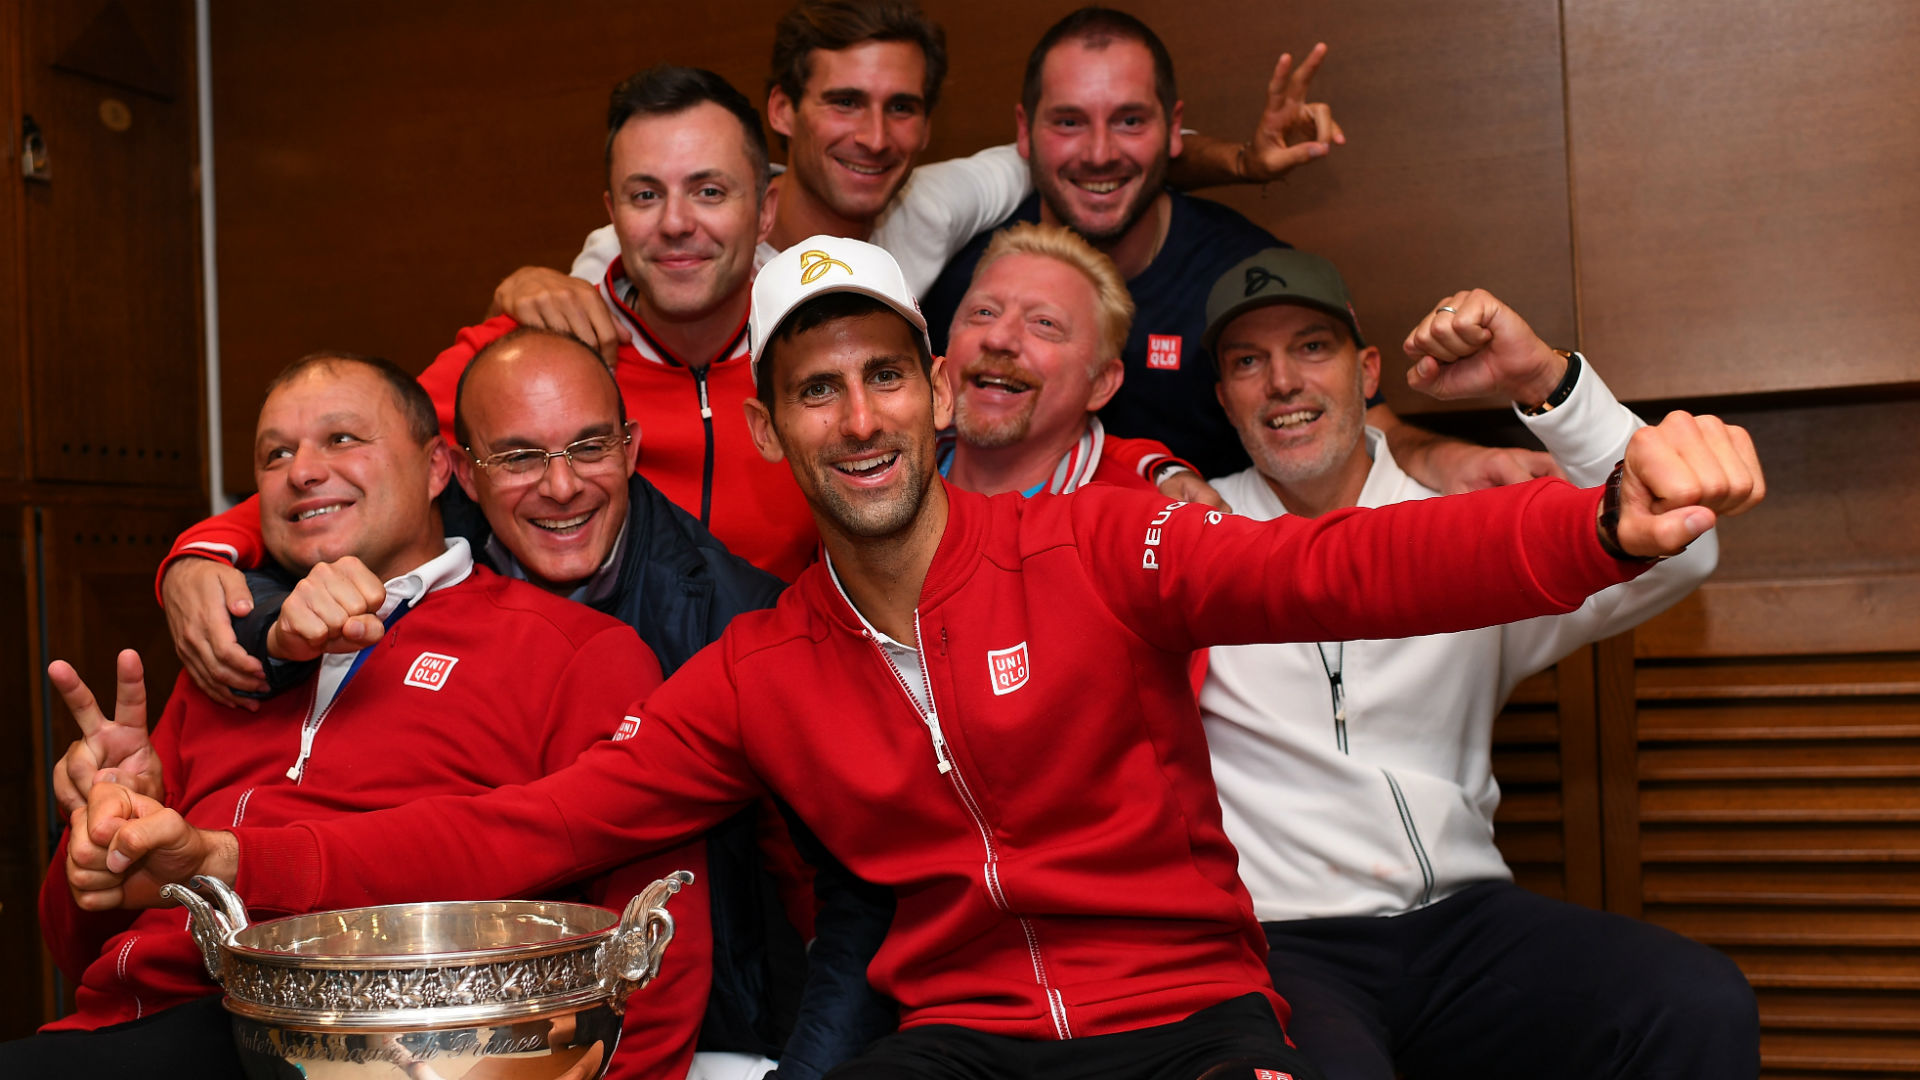 Will Djokovic's Reunion Inspire Restoration?